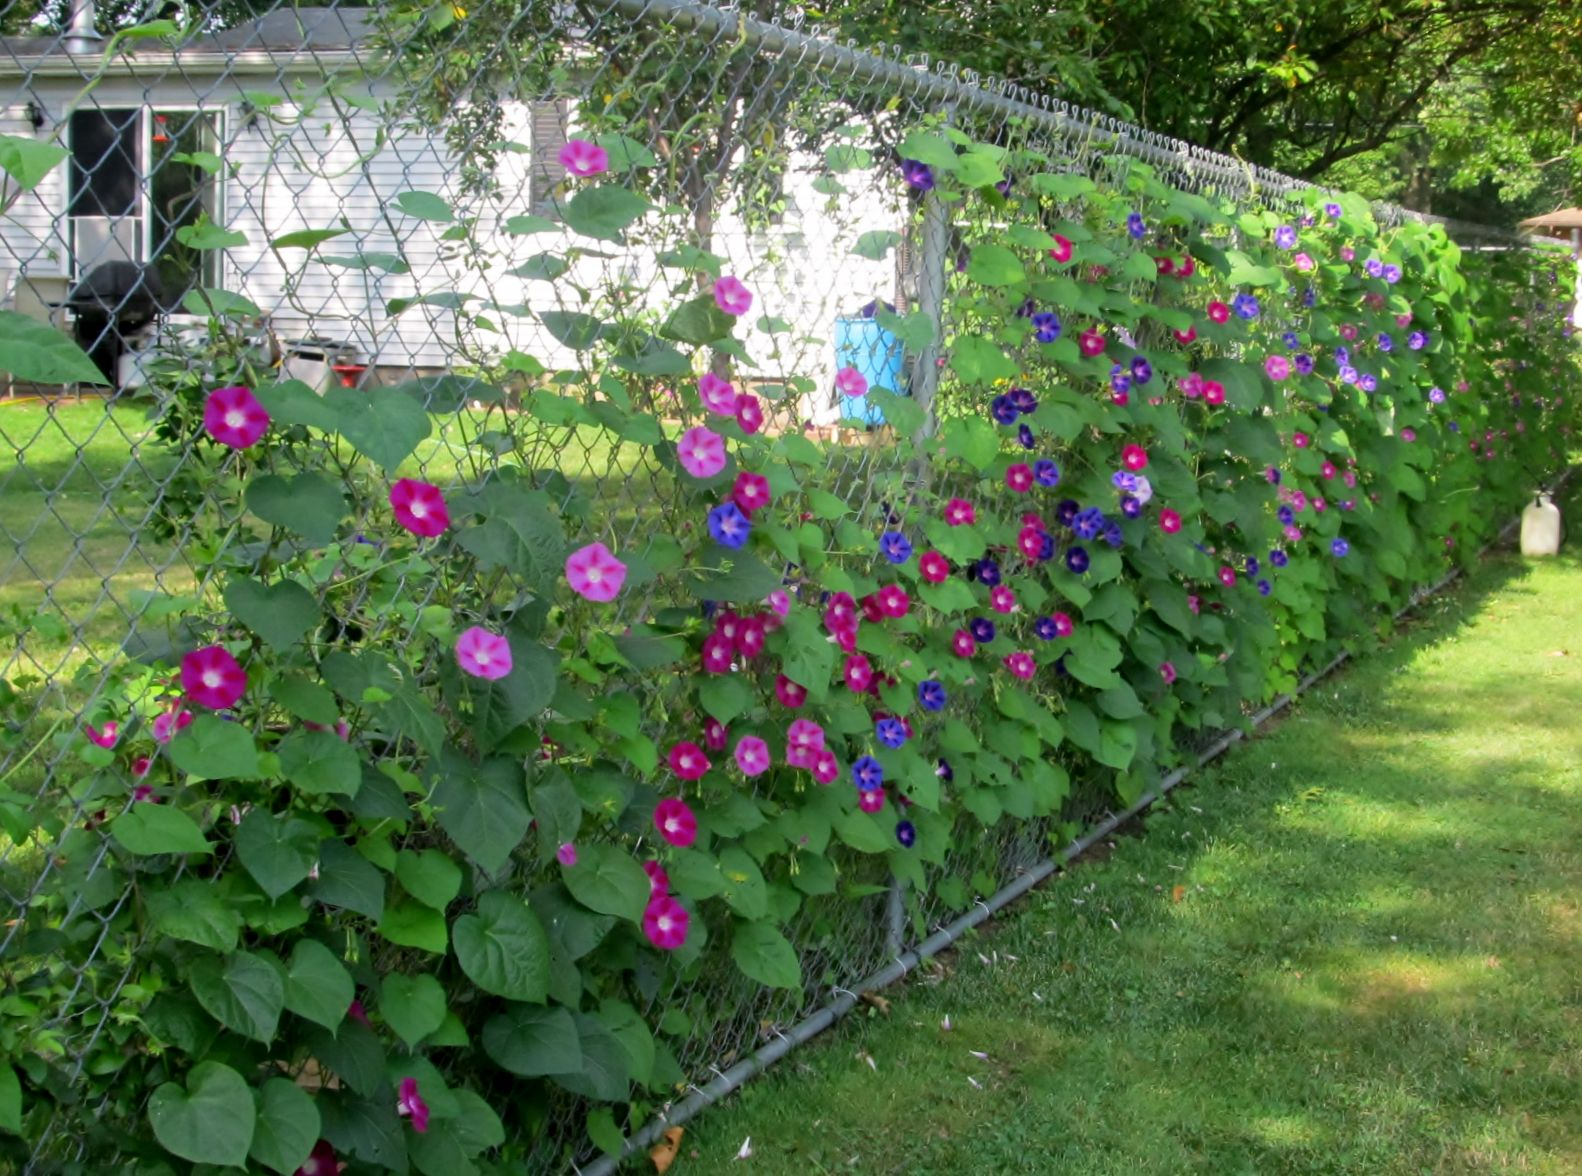 Plants That Grow On Fences Covering Chain Link Fences With Vines